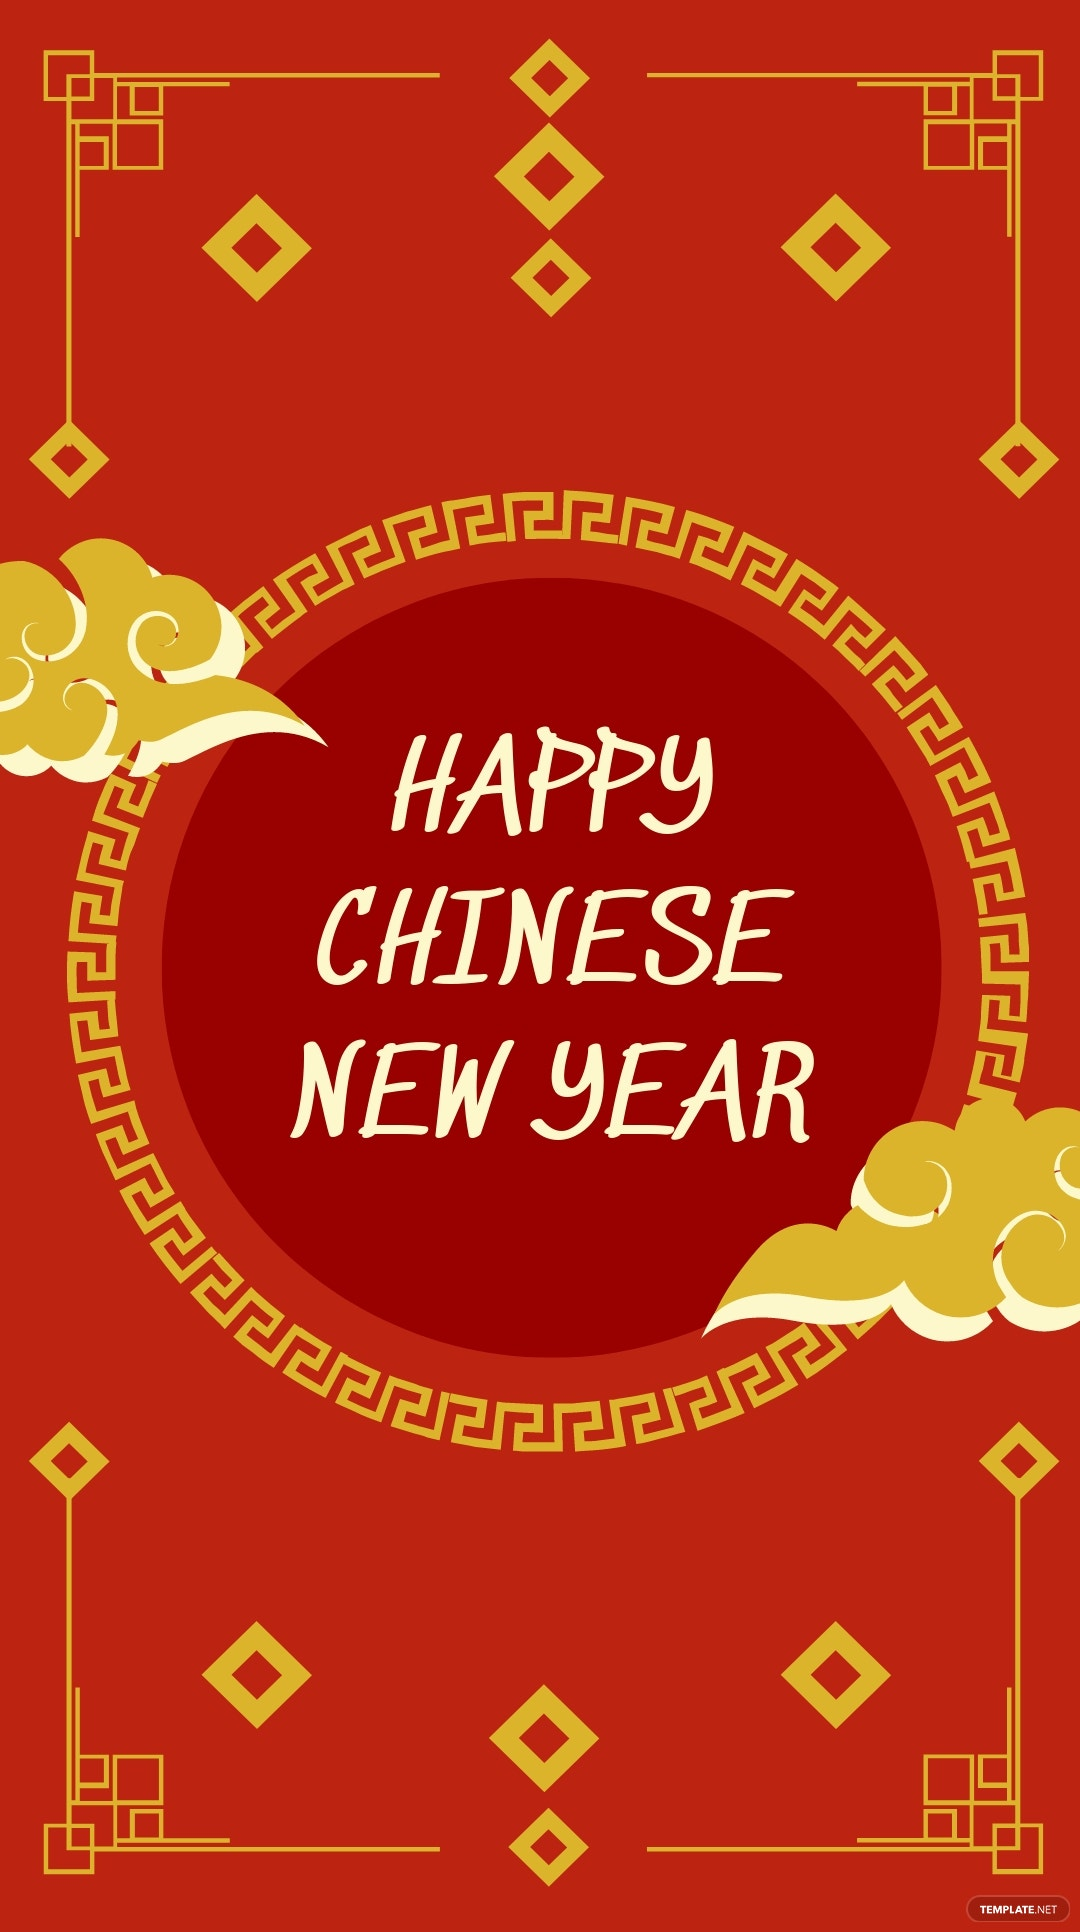 Vintage Chinese New Year Instagram Story Template 2.jpe